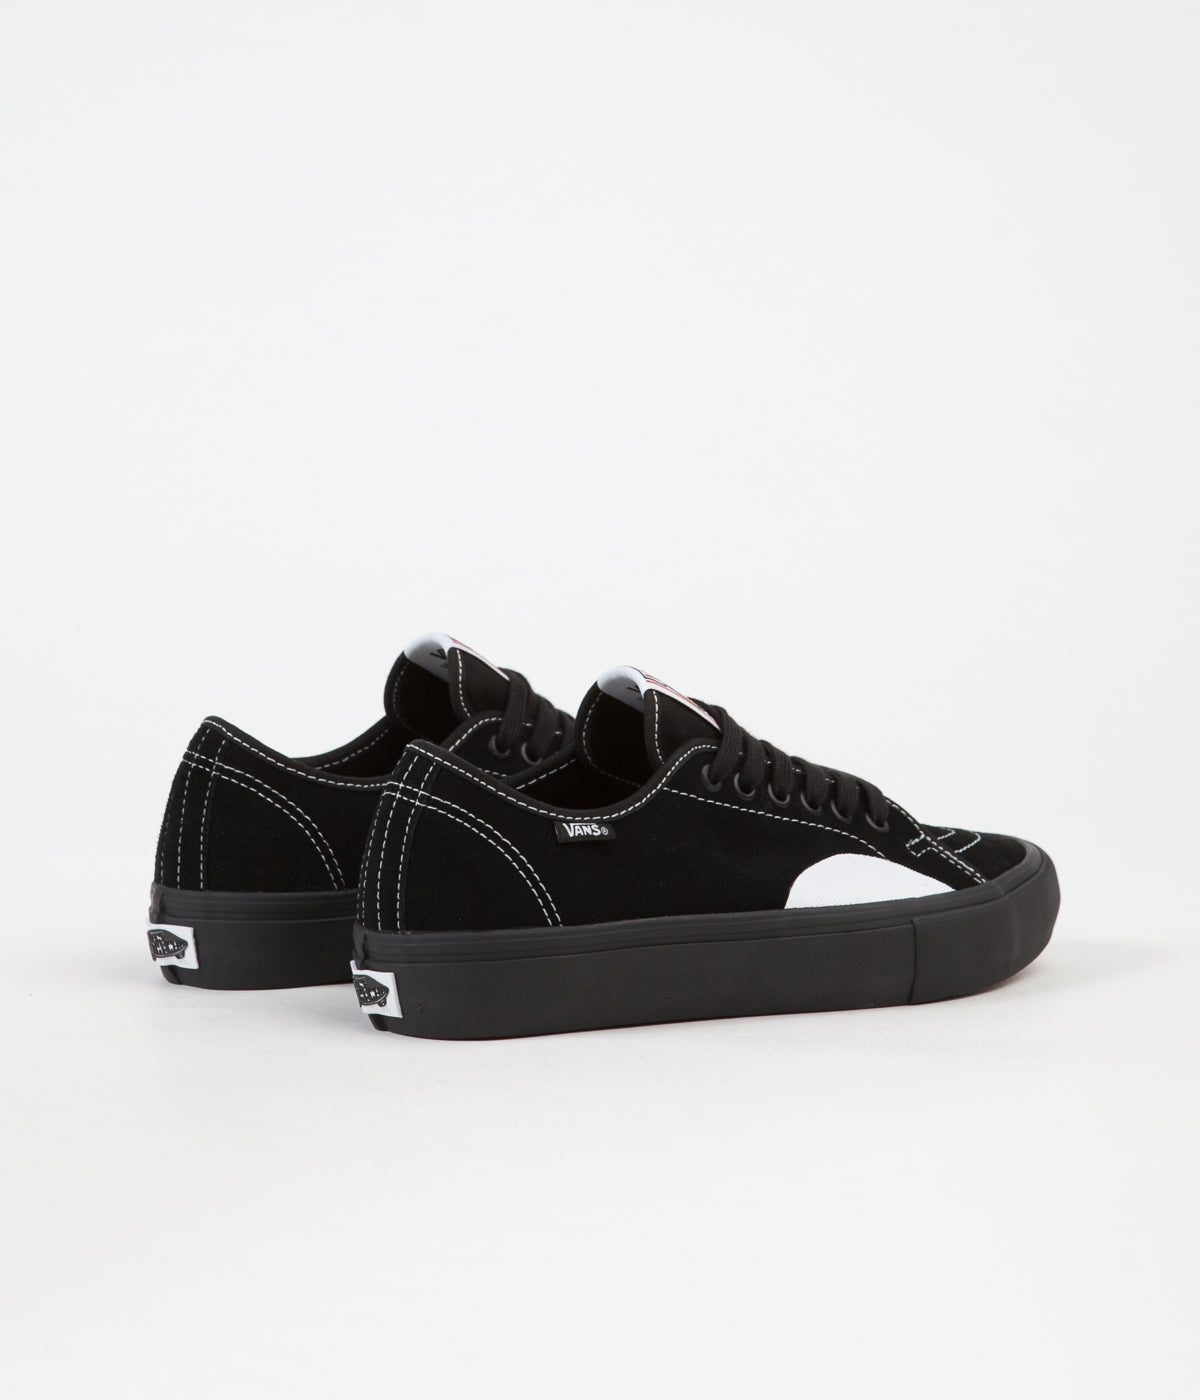 Vans AV Classic Pro Shoes - Black / Black / White